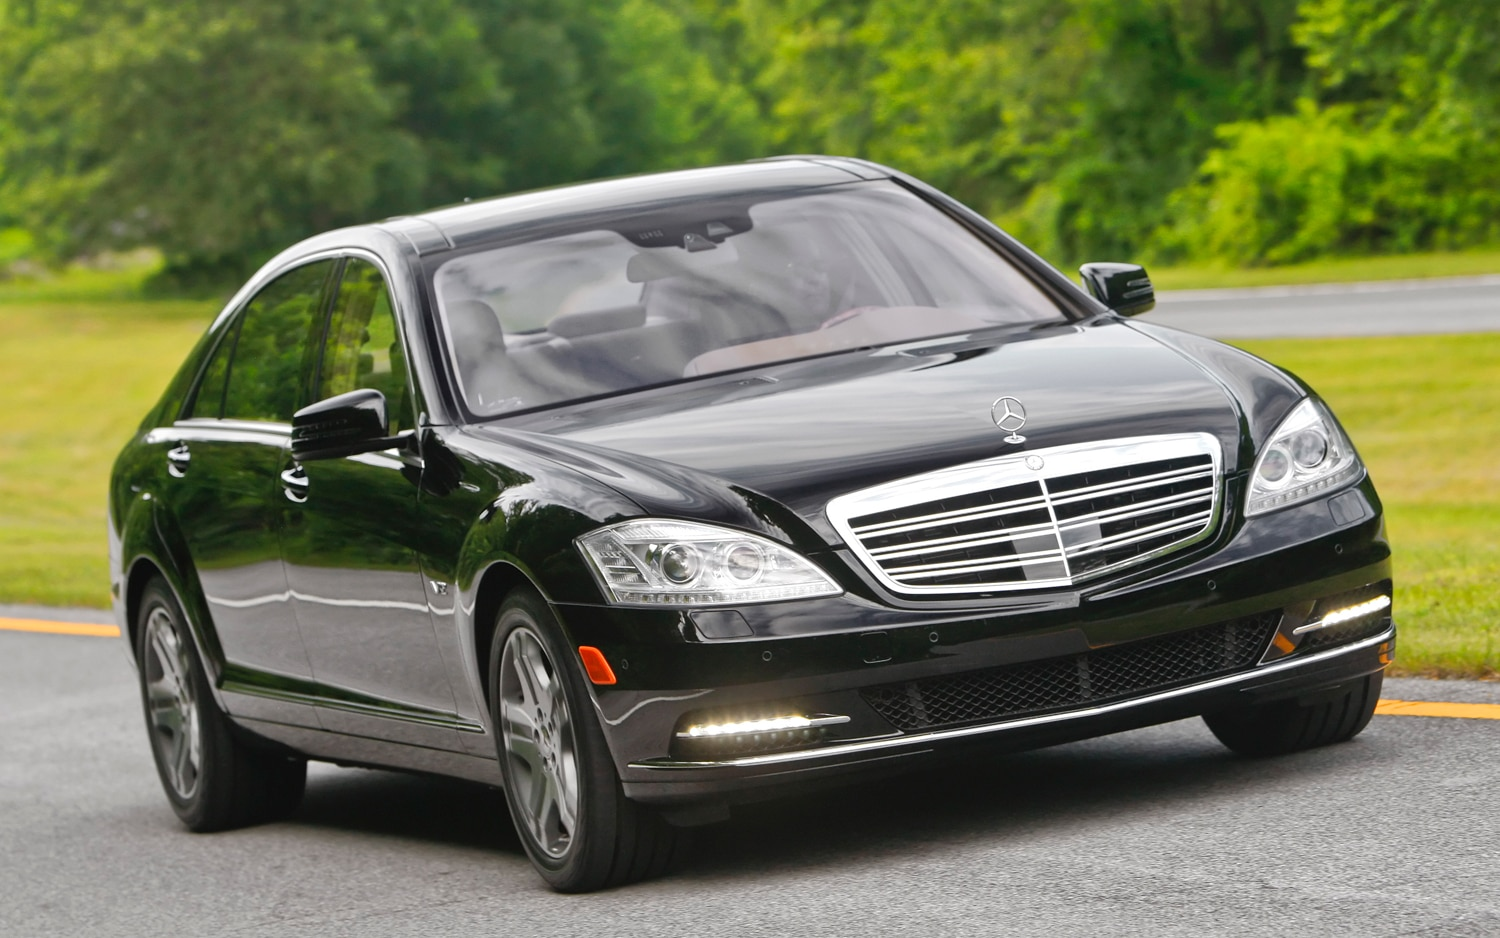 Mercedes benz plans to scrap maybach luxury brand by 2013 for Mercedes benz brand